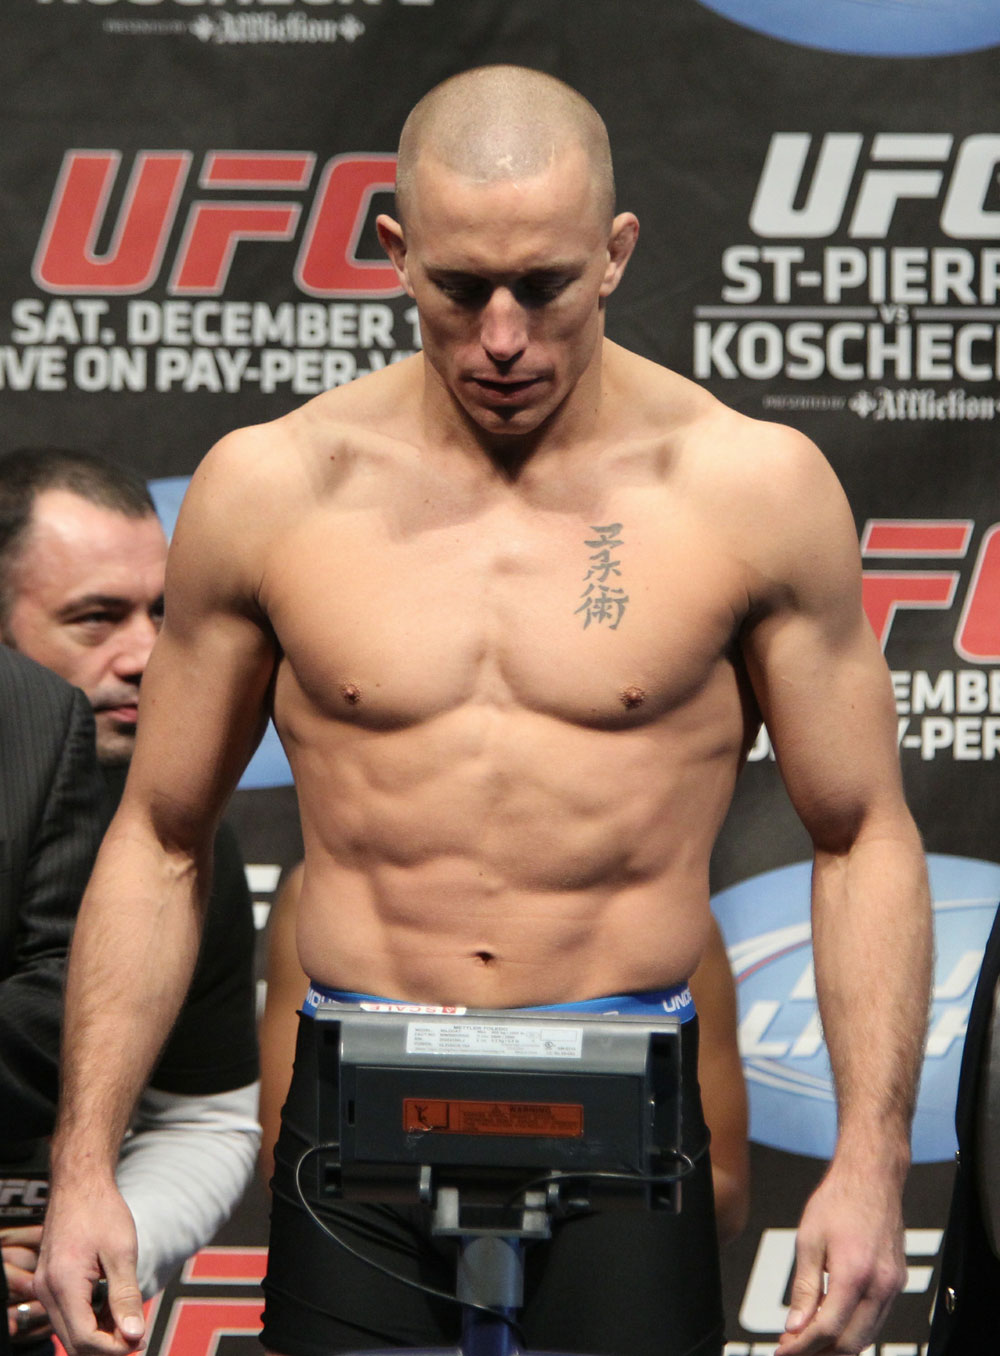 UFC 124 Weigh-in: Georges St-Pierre weighs in at 170lbs